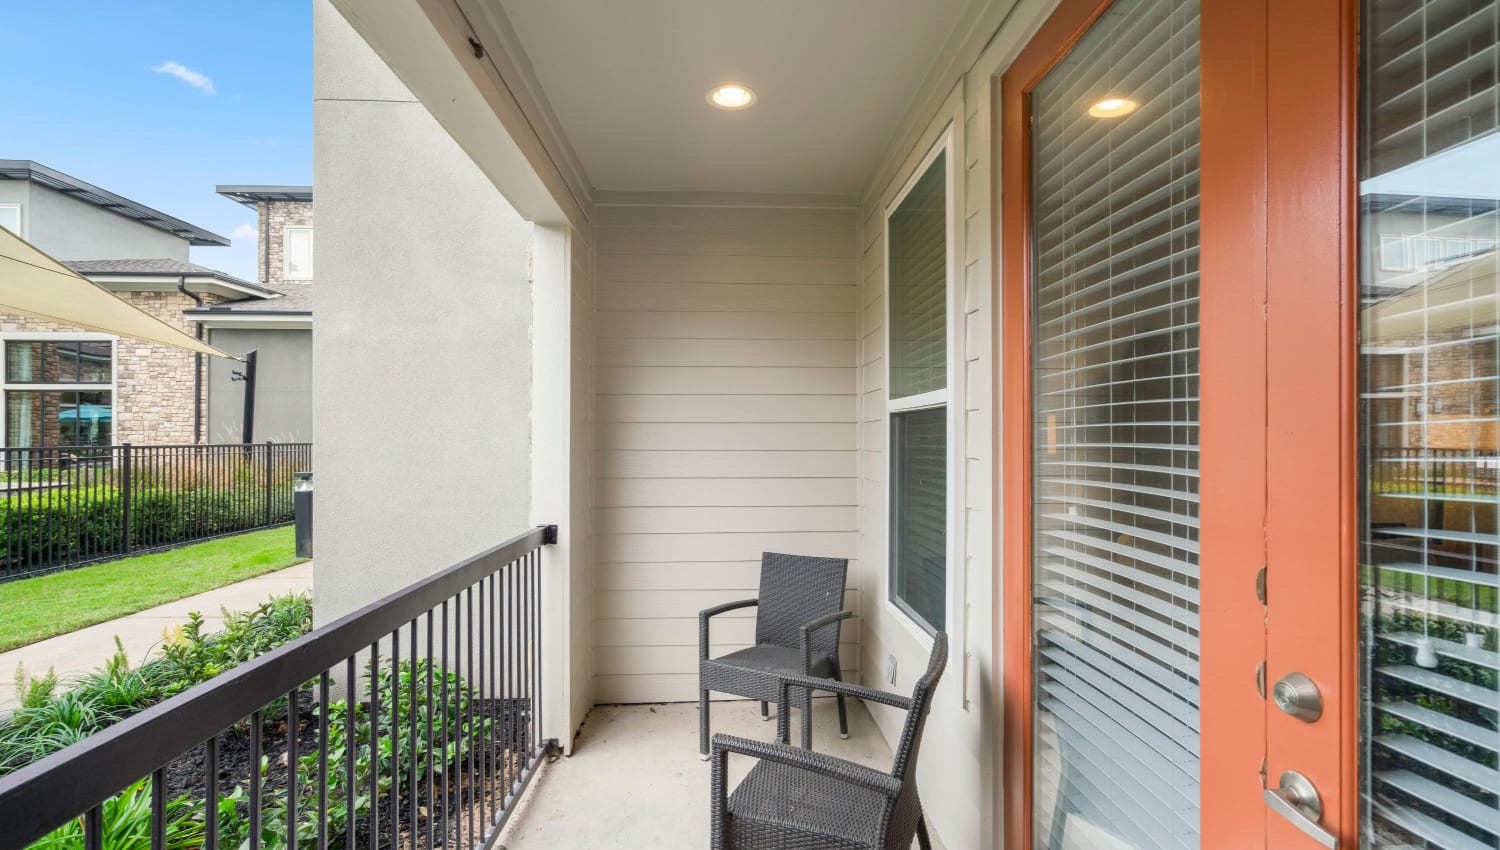 Private patio at Olympus Grand Crossing in Katy, Texas